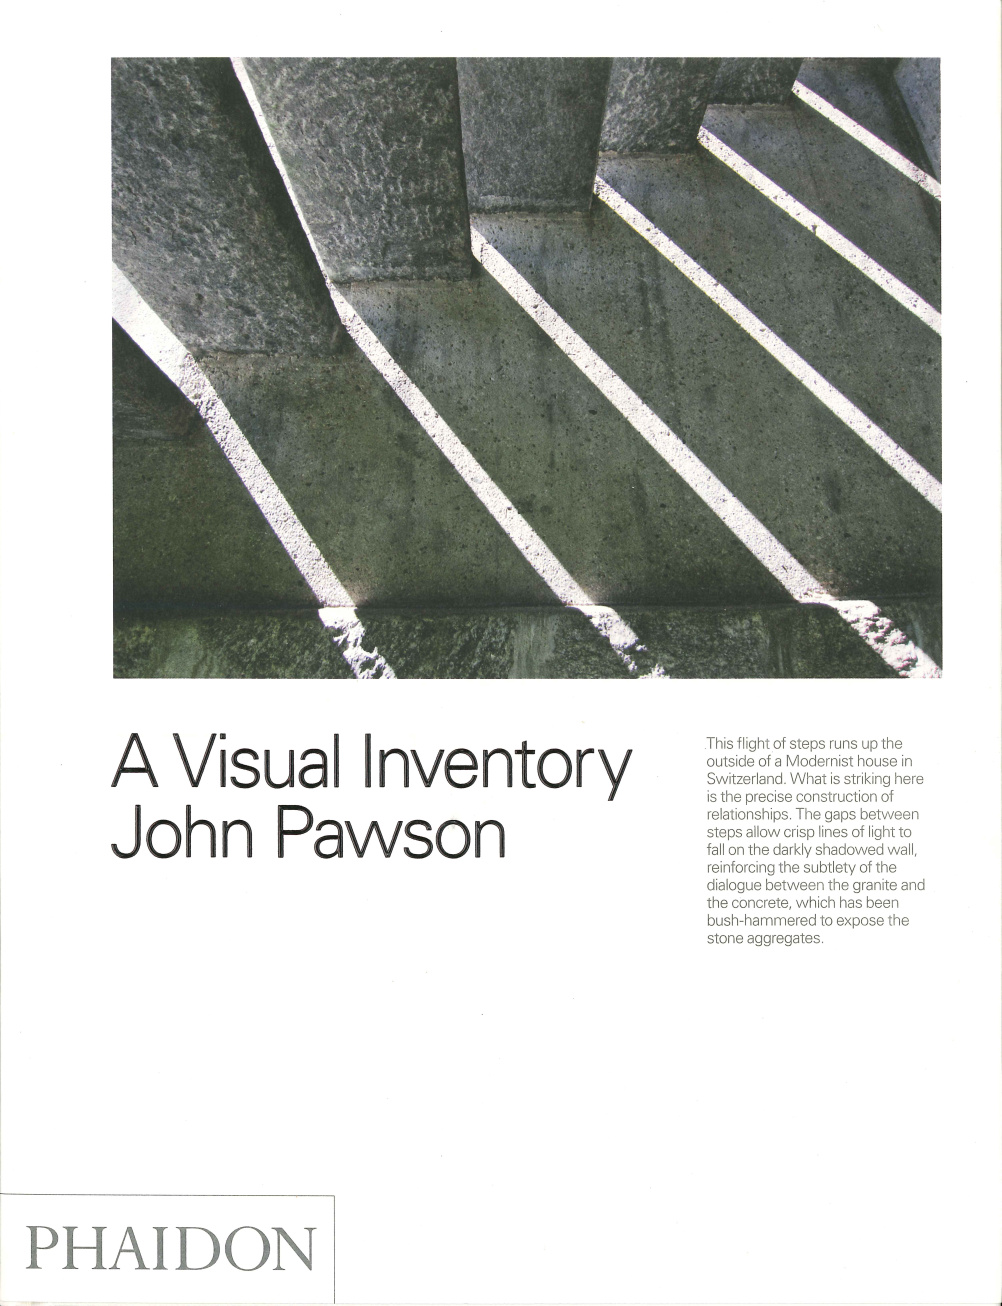 Paul Smith has chosen A Visual Inventory by John Pawson